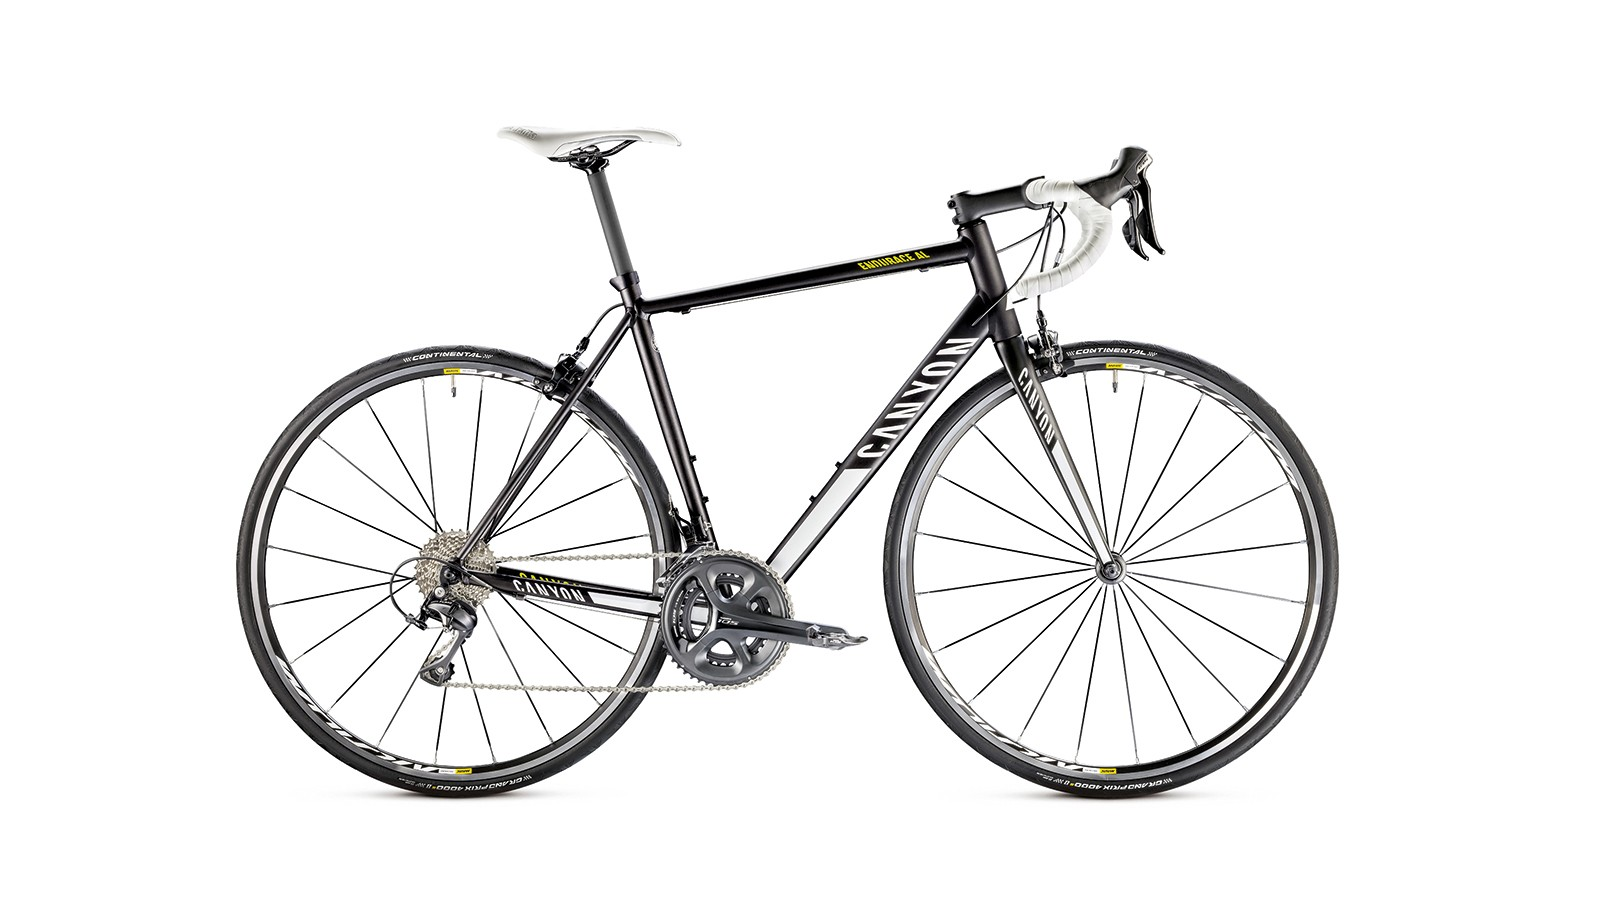 The Canyon Endurace AL deserves to be the benchmark for other affordable road bikes